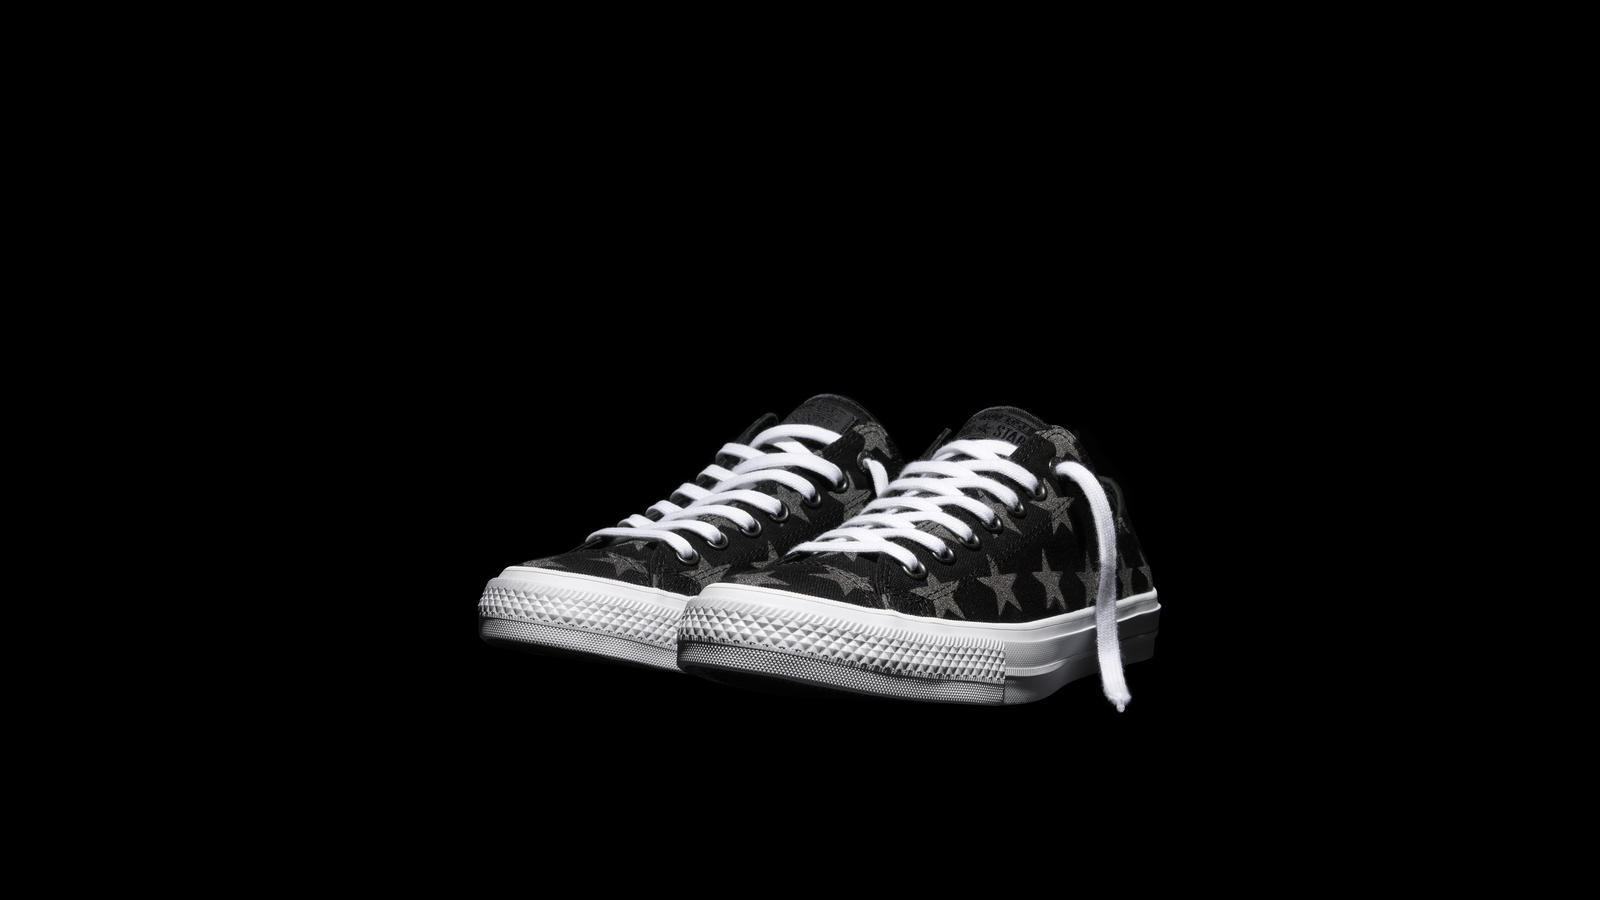 01318d7ba8c Converse Chuck Taylor All Star Ii Reflective Stars Black Pair Original